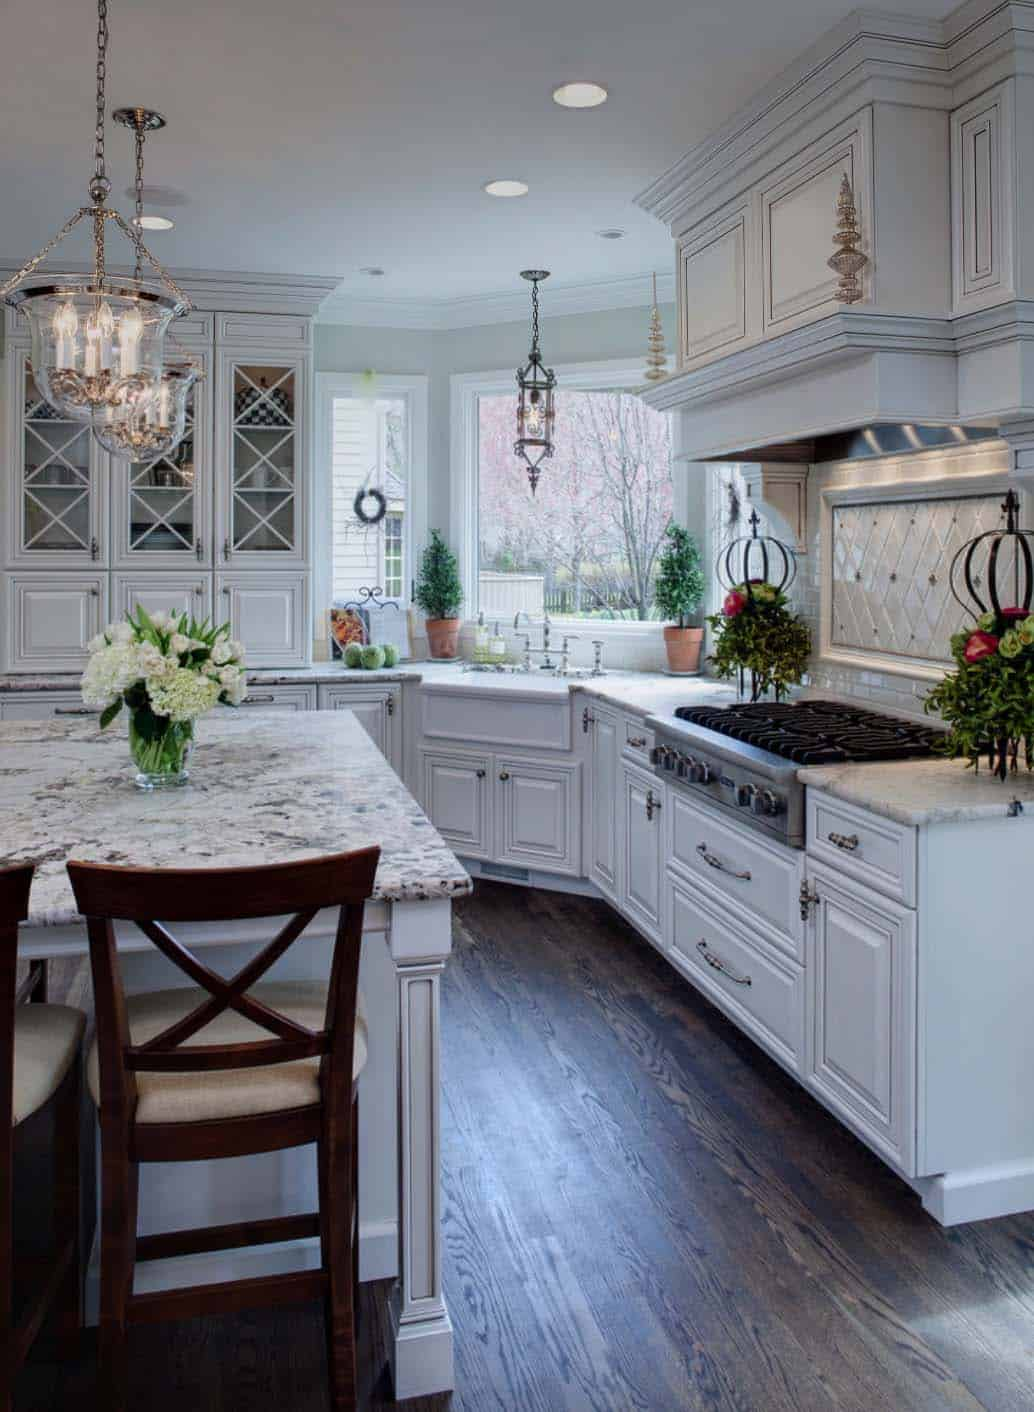 30+ Beautiful and inspiring light-filled kitchens with white countertops